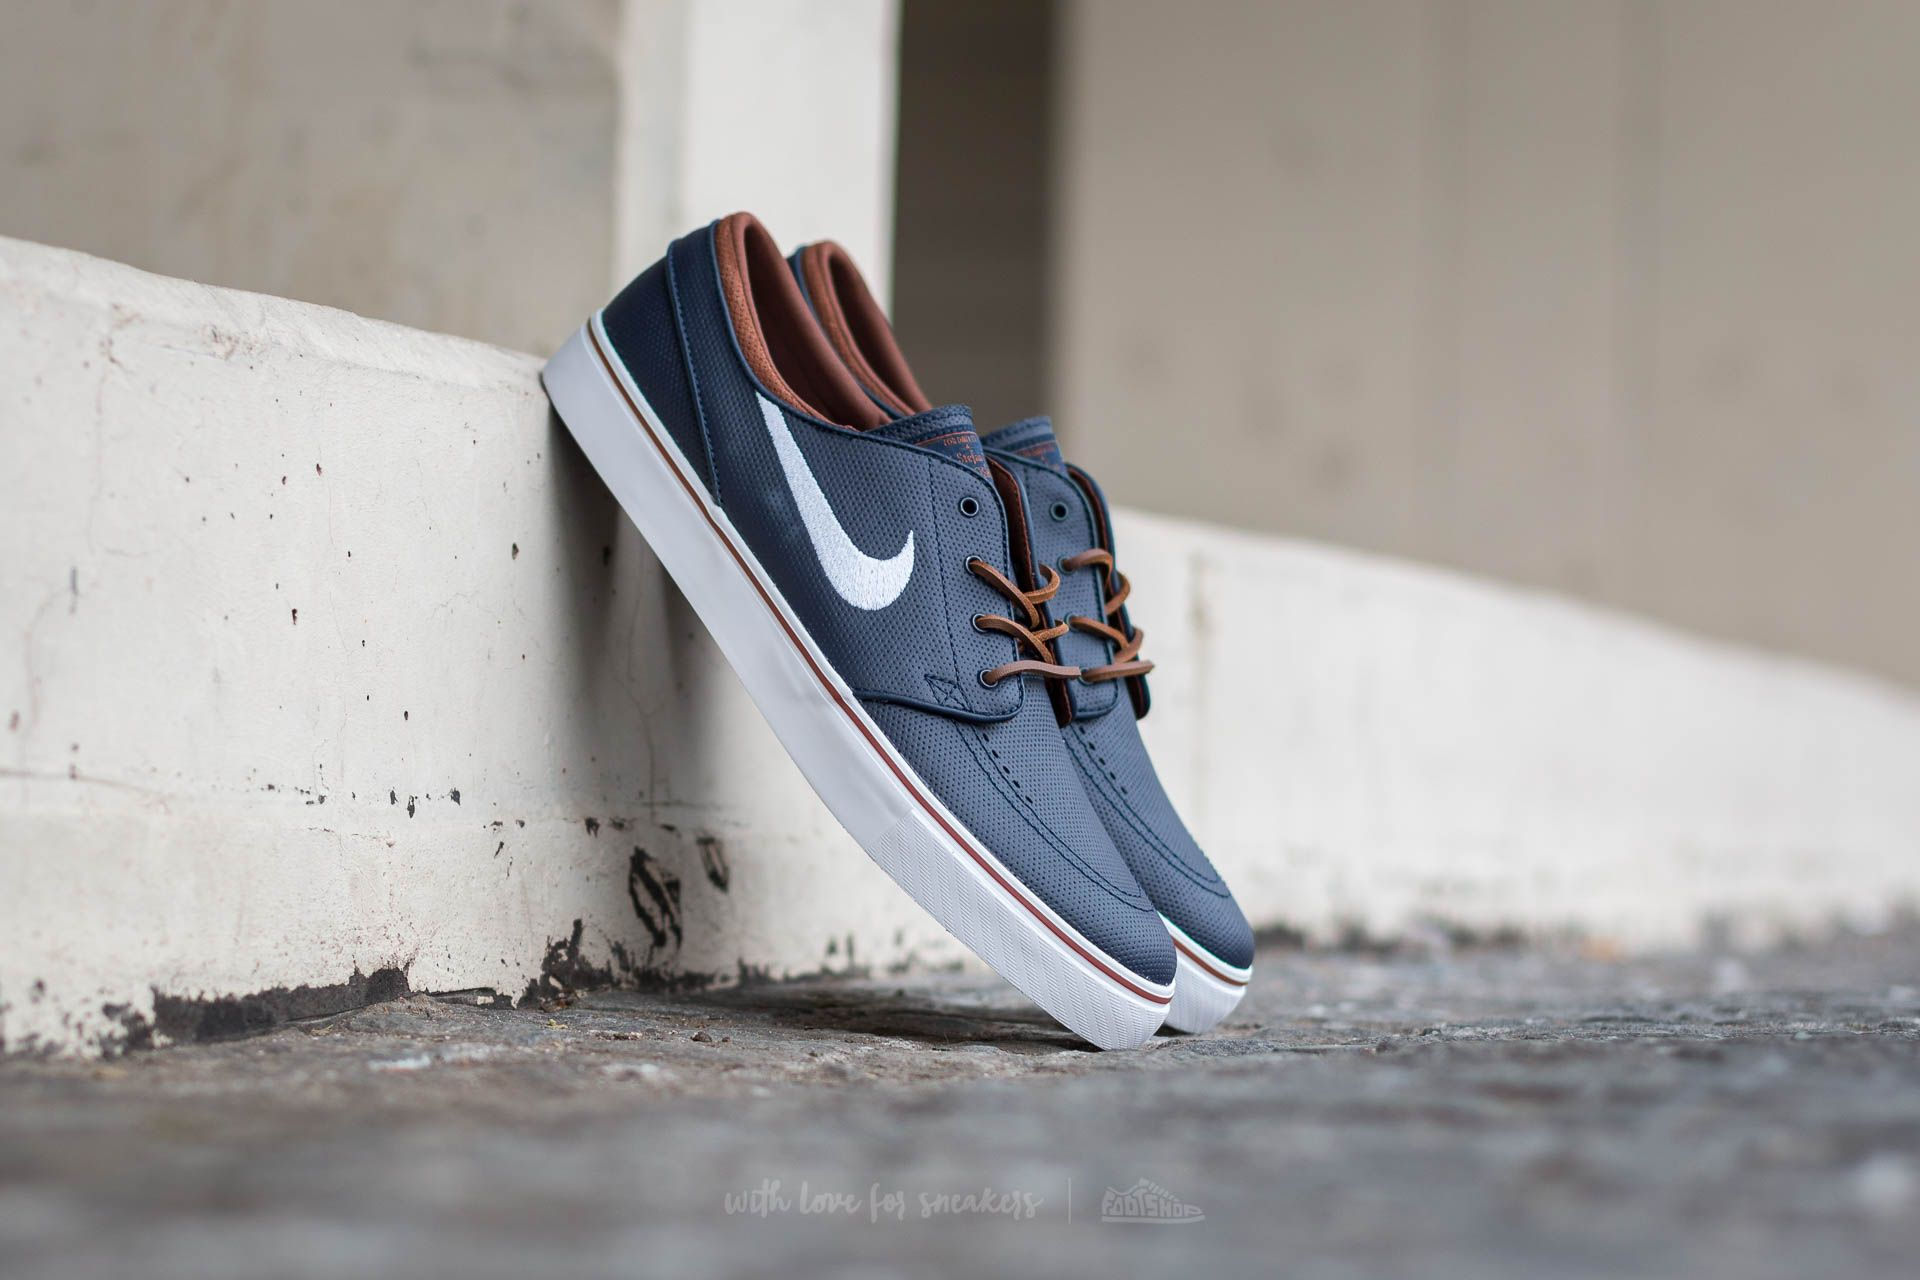 Duque grosor Agregar  Men's shoes Nike Zoom Stefan Janoski OG Obsidian/ White-Rustic-White |  Footshop